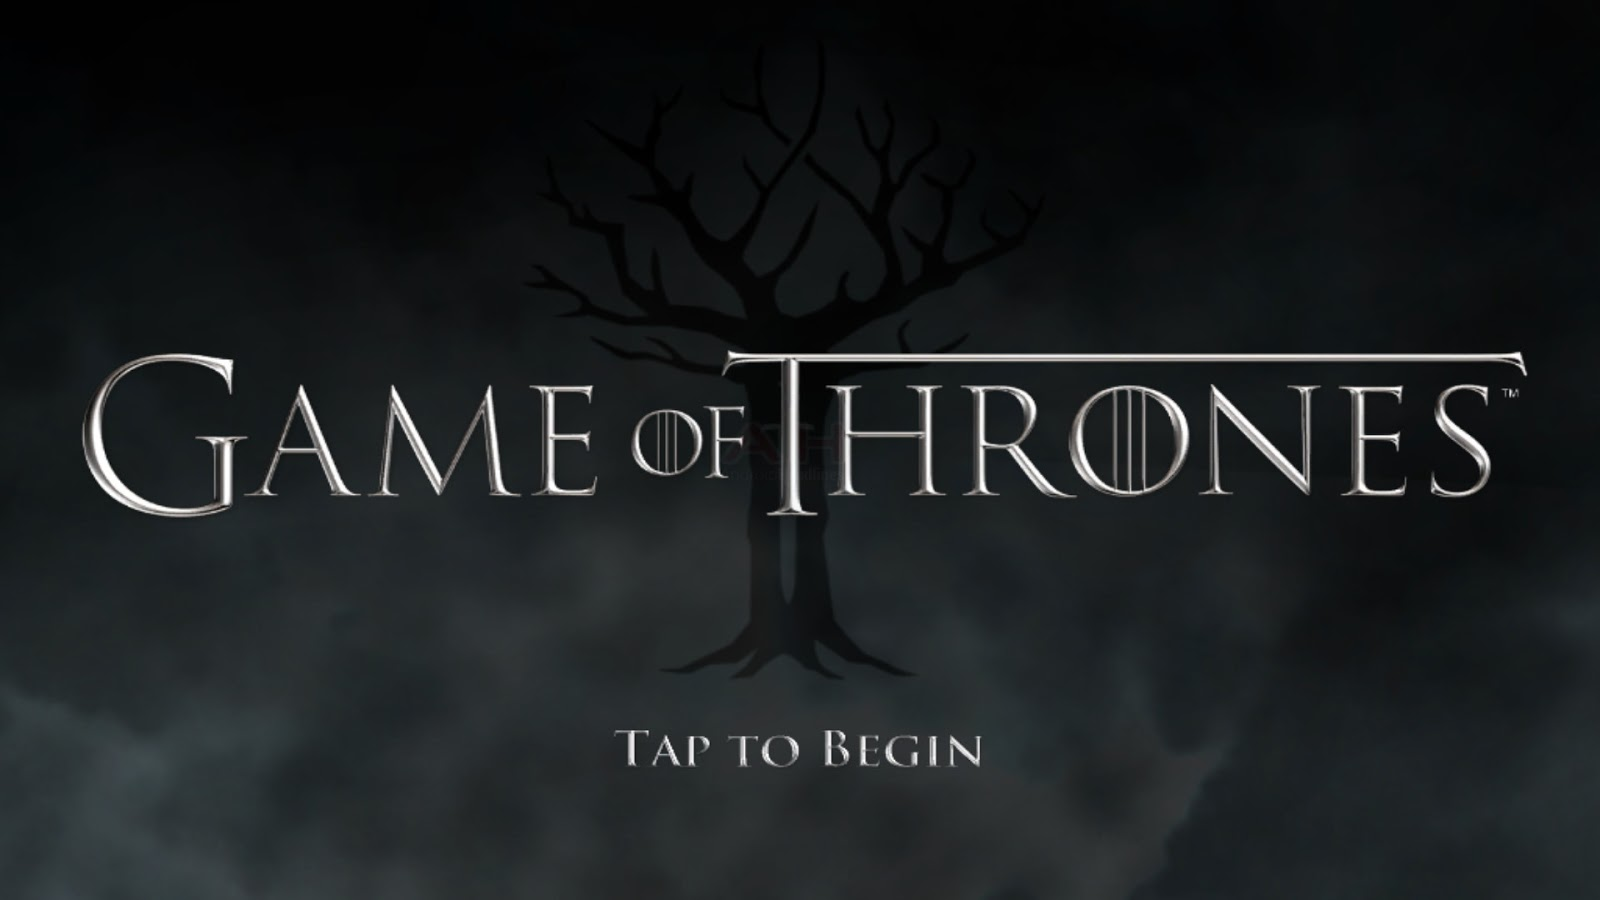 Game of Thrones font android apk